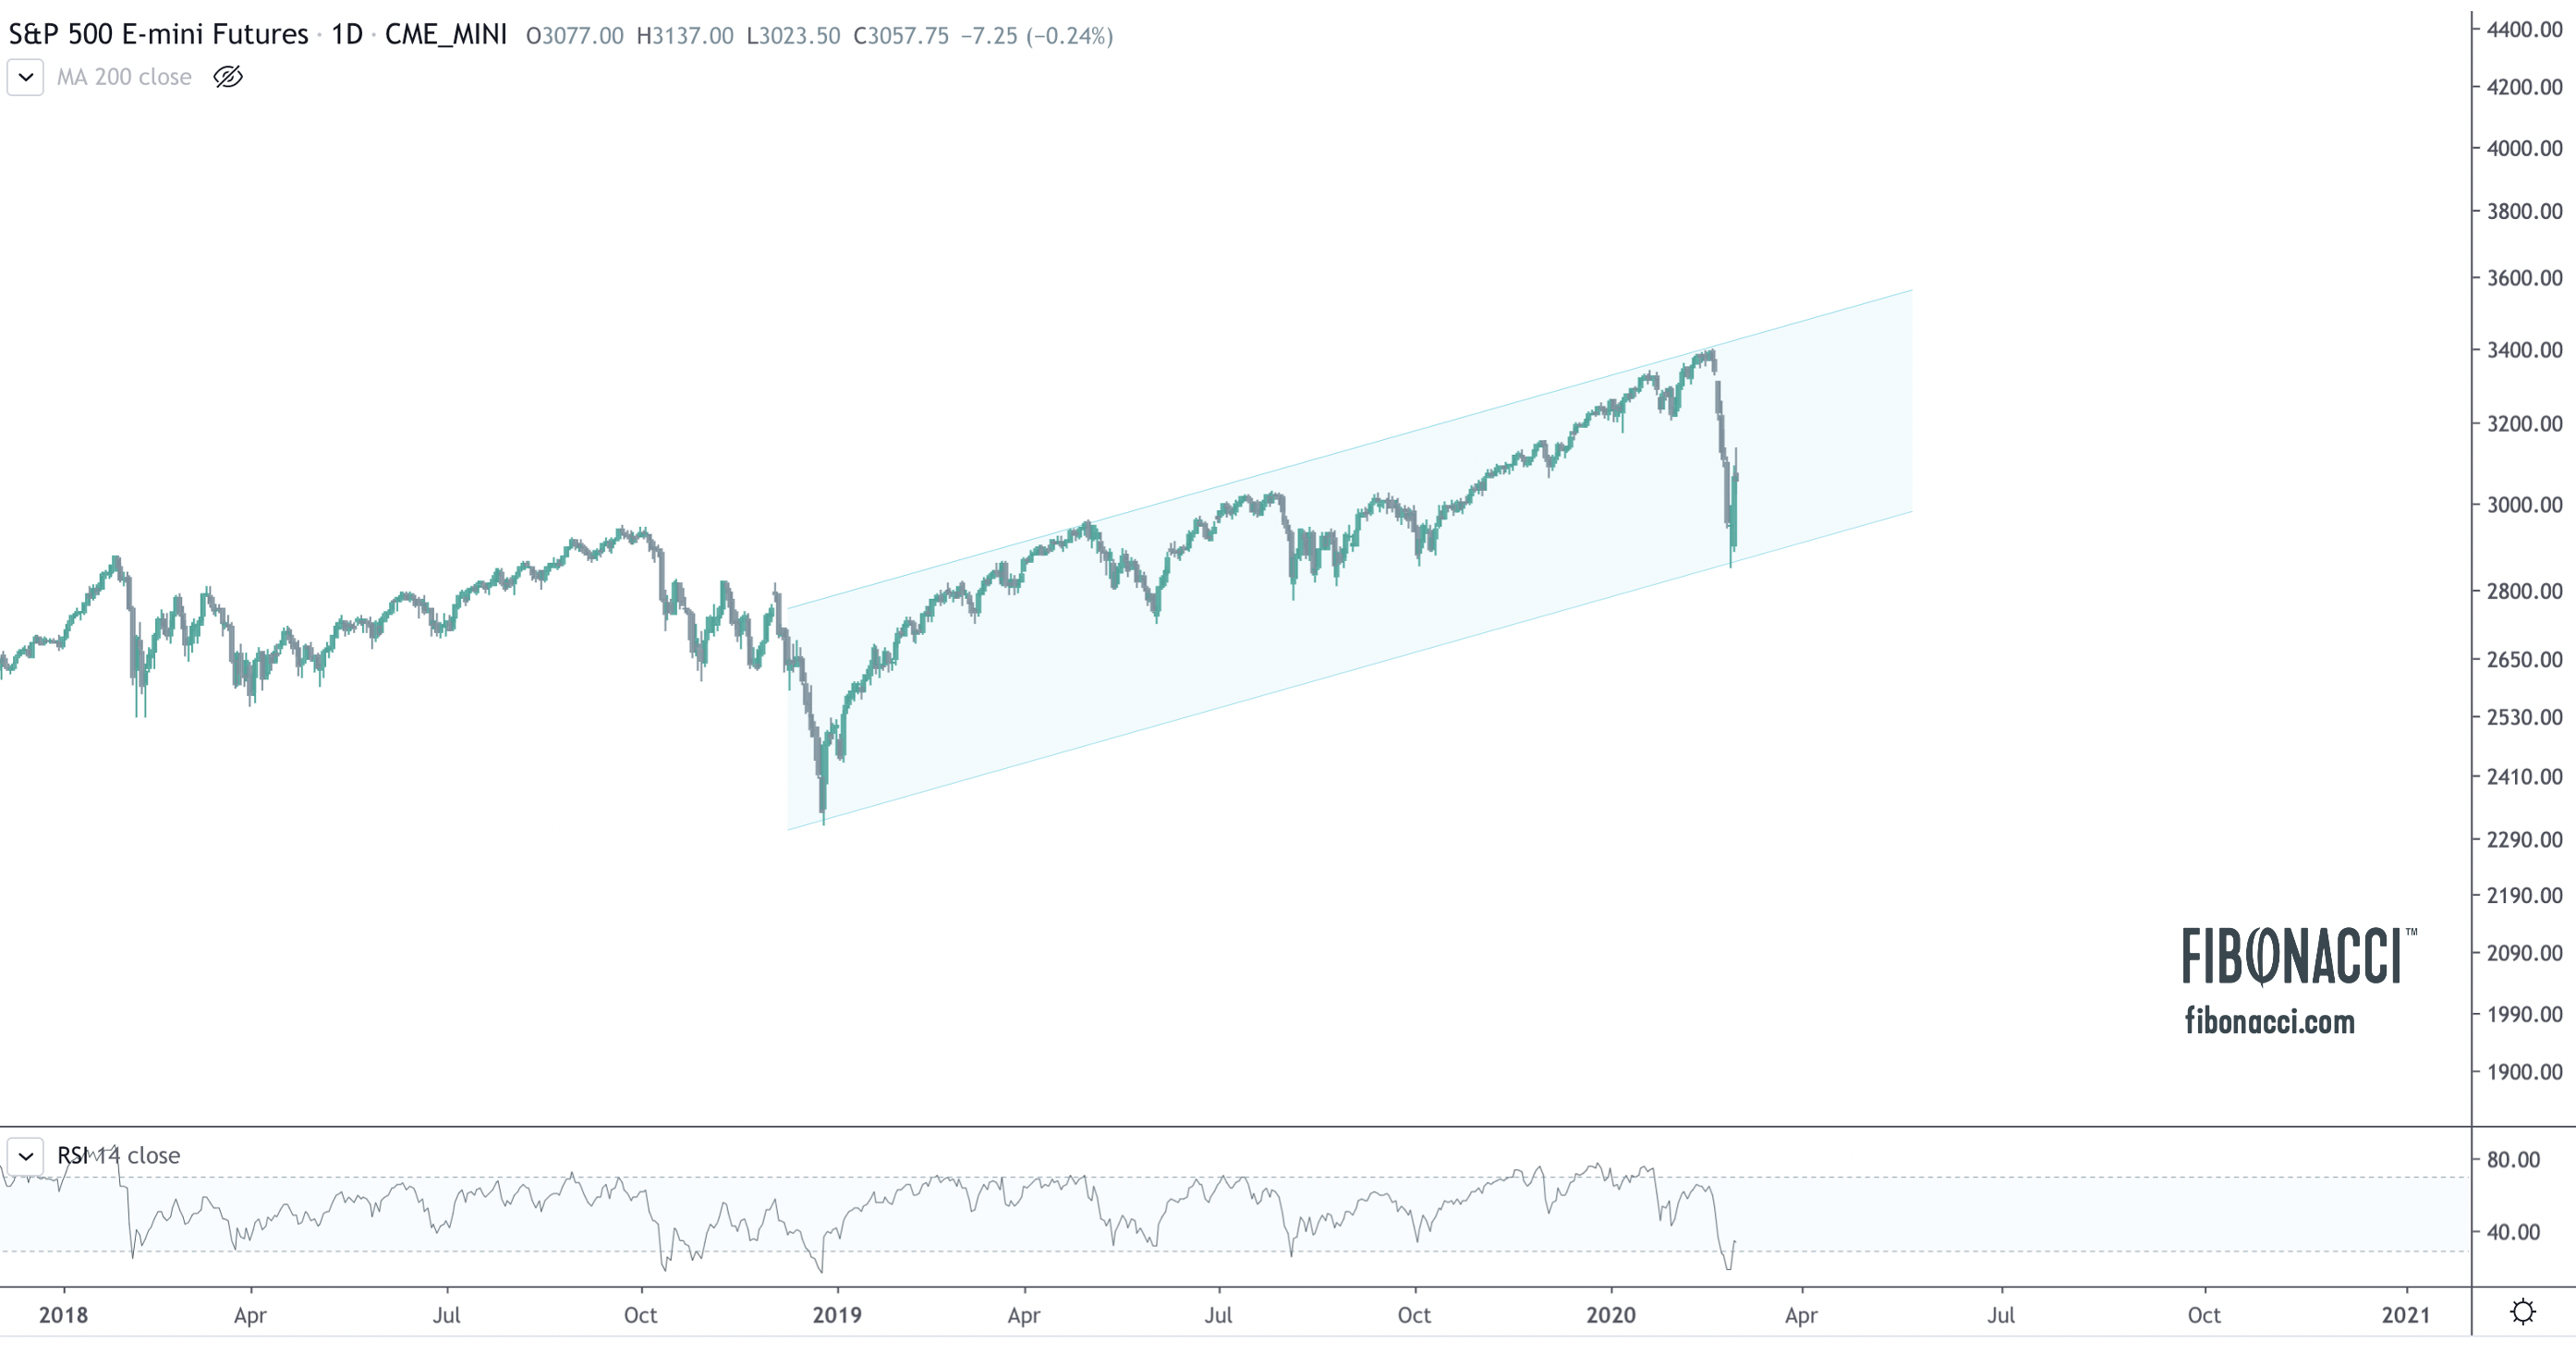 Market Crash of 2020: Where Do We Go From Here?